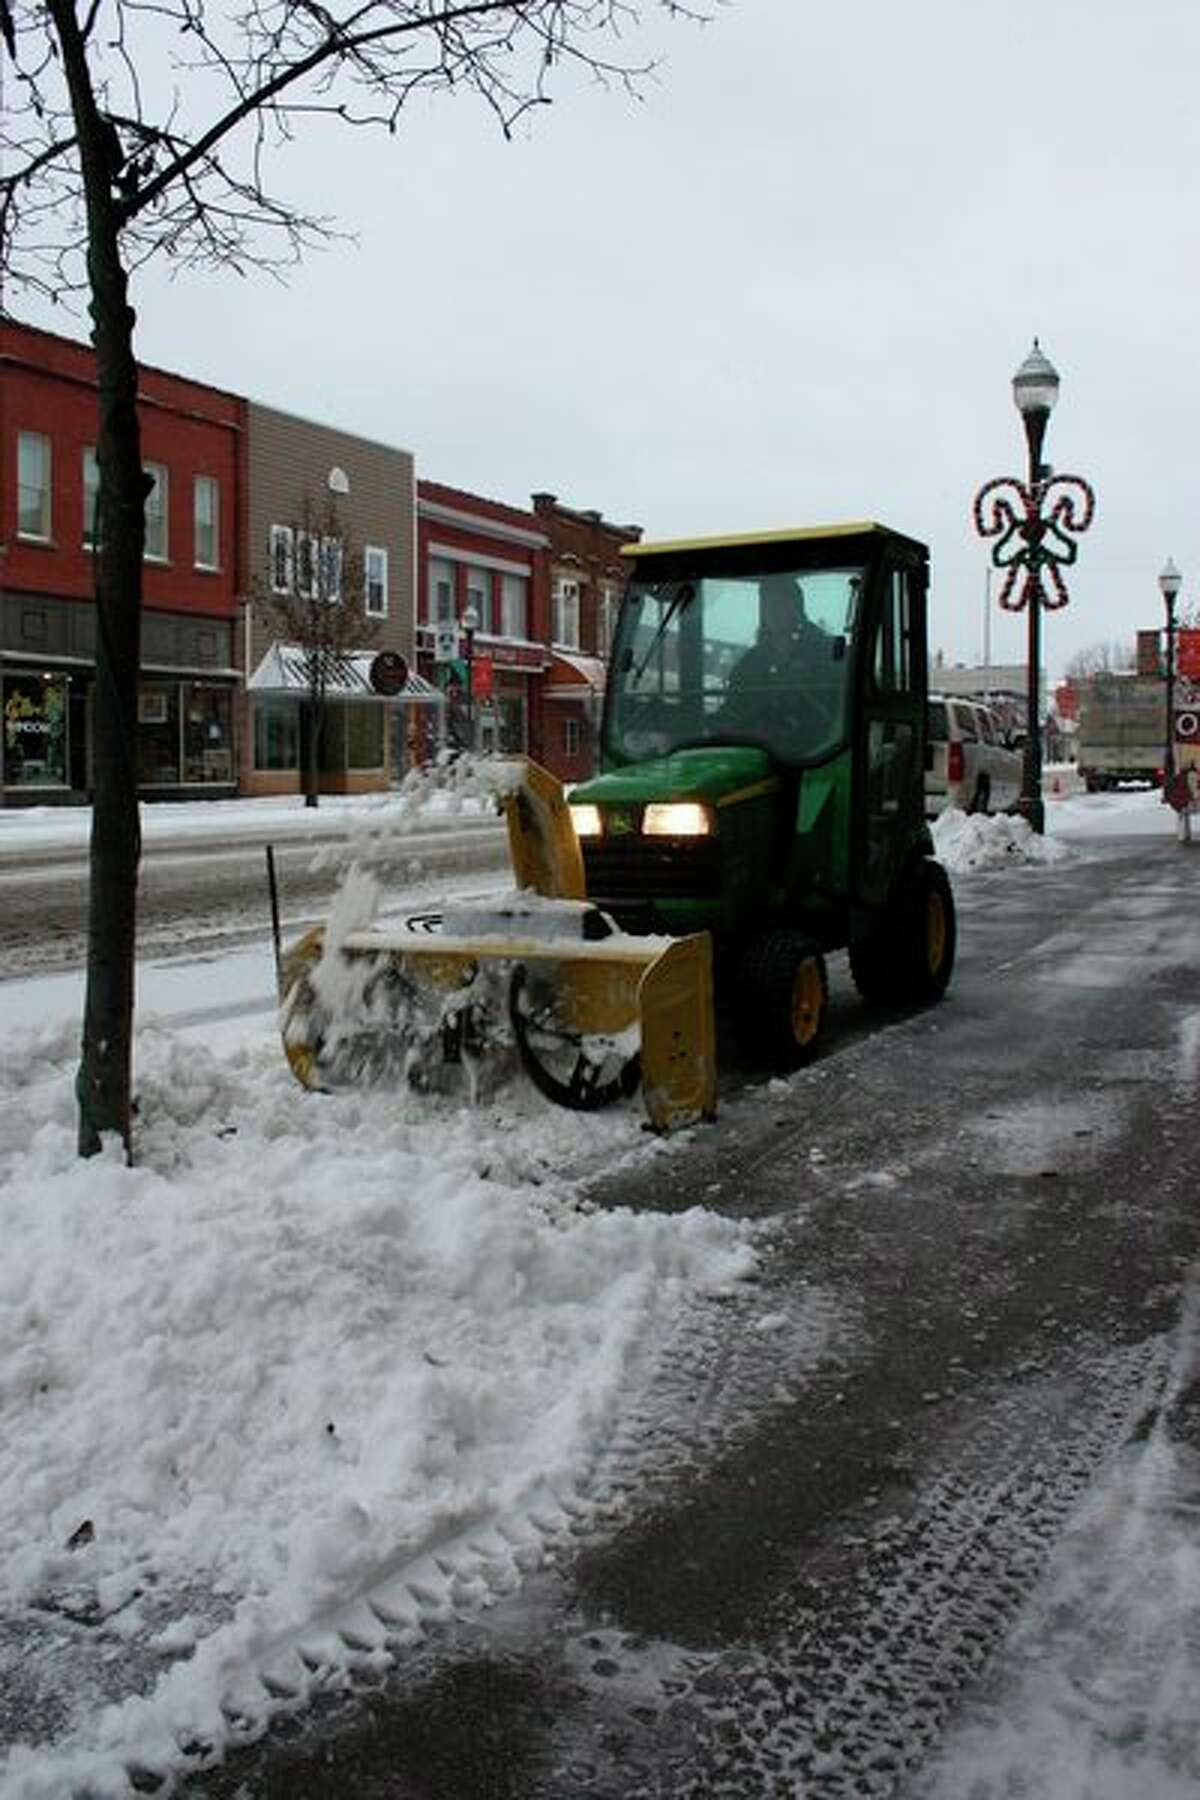 A small plow pushes snow out of the way on a sidewalk in Big Rapids on Tuesday. (Pioneer photo/Tim Rath)